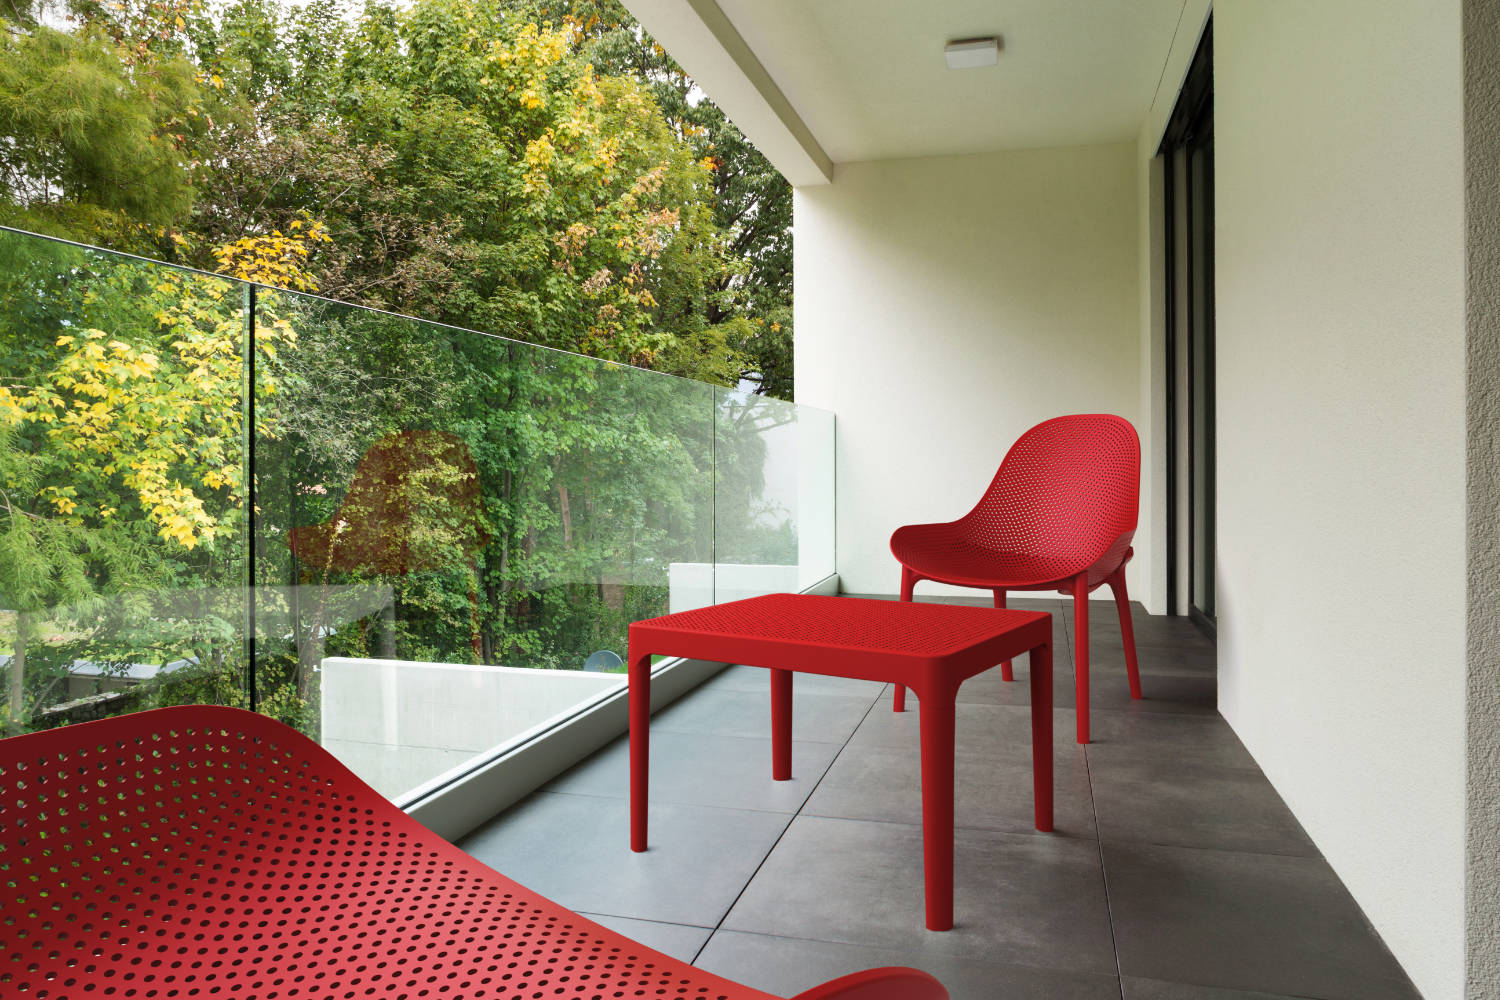 Sky Outdoor Side Table Red ISP109-RED - 6